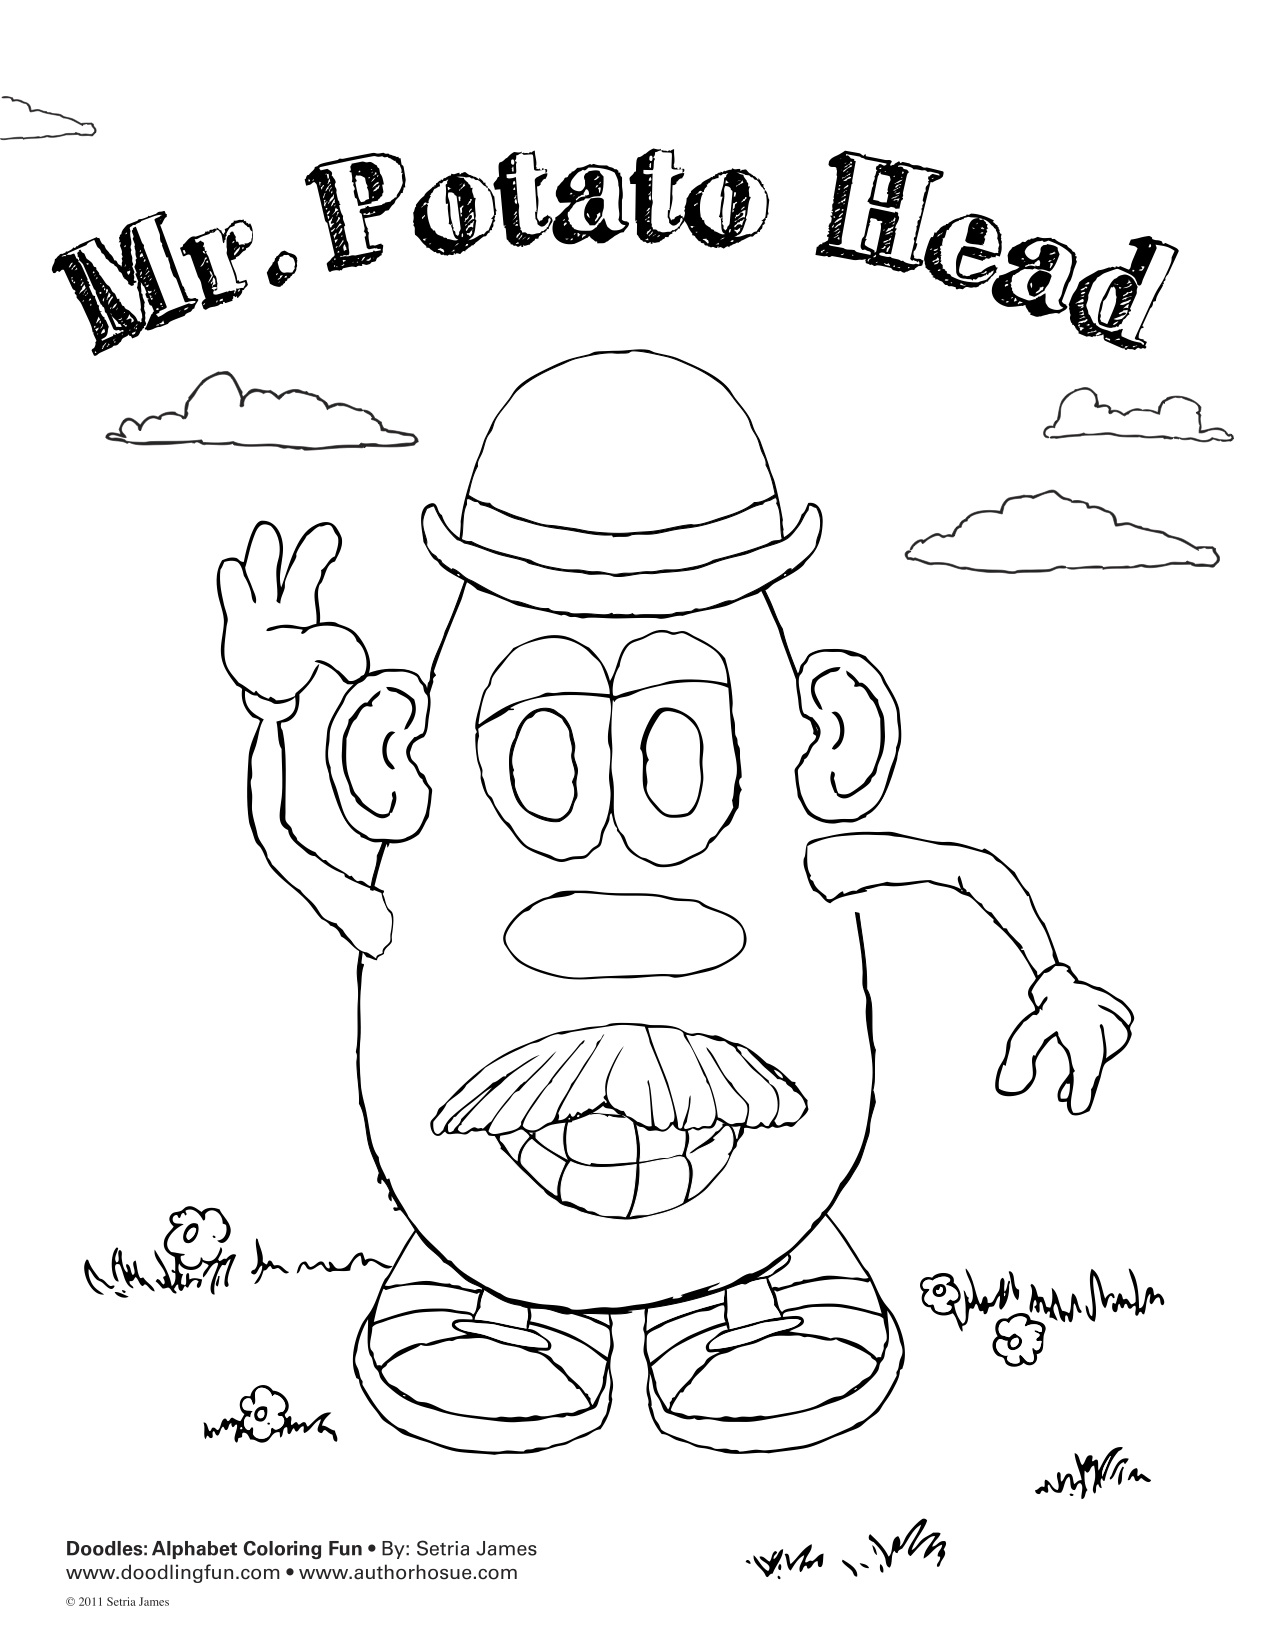 Mr potato head coloring pages to download and print for free